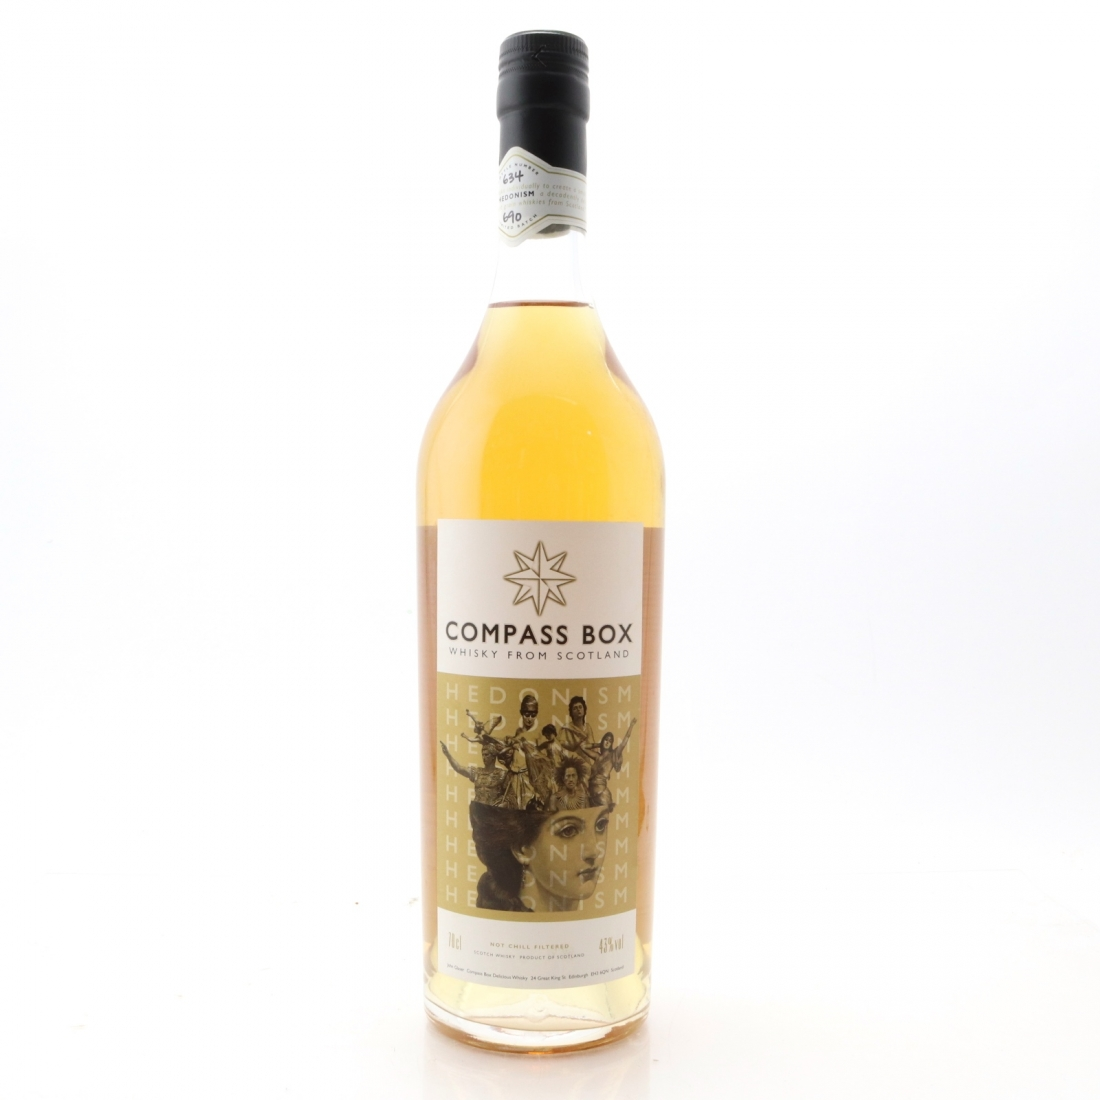 Compass Box Hedonism First Edition